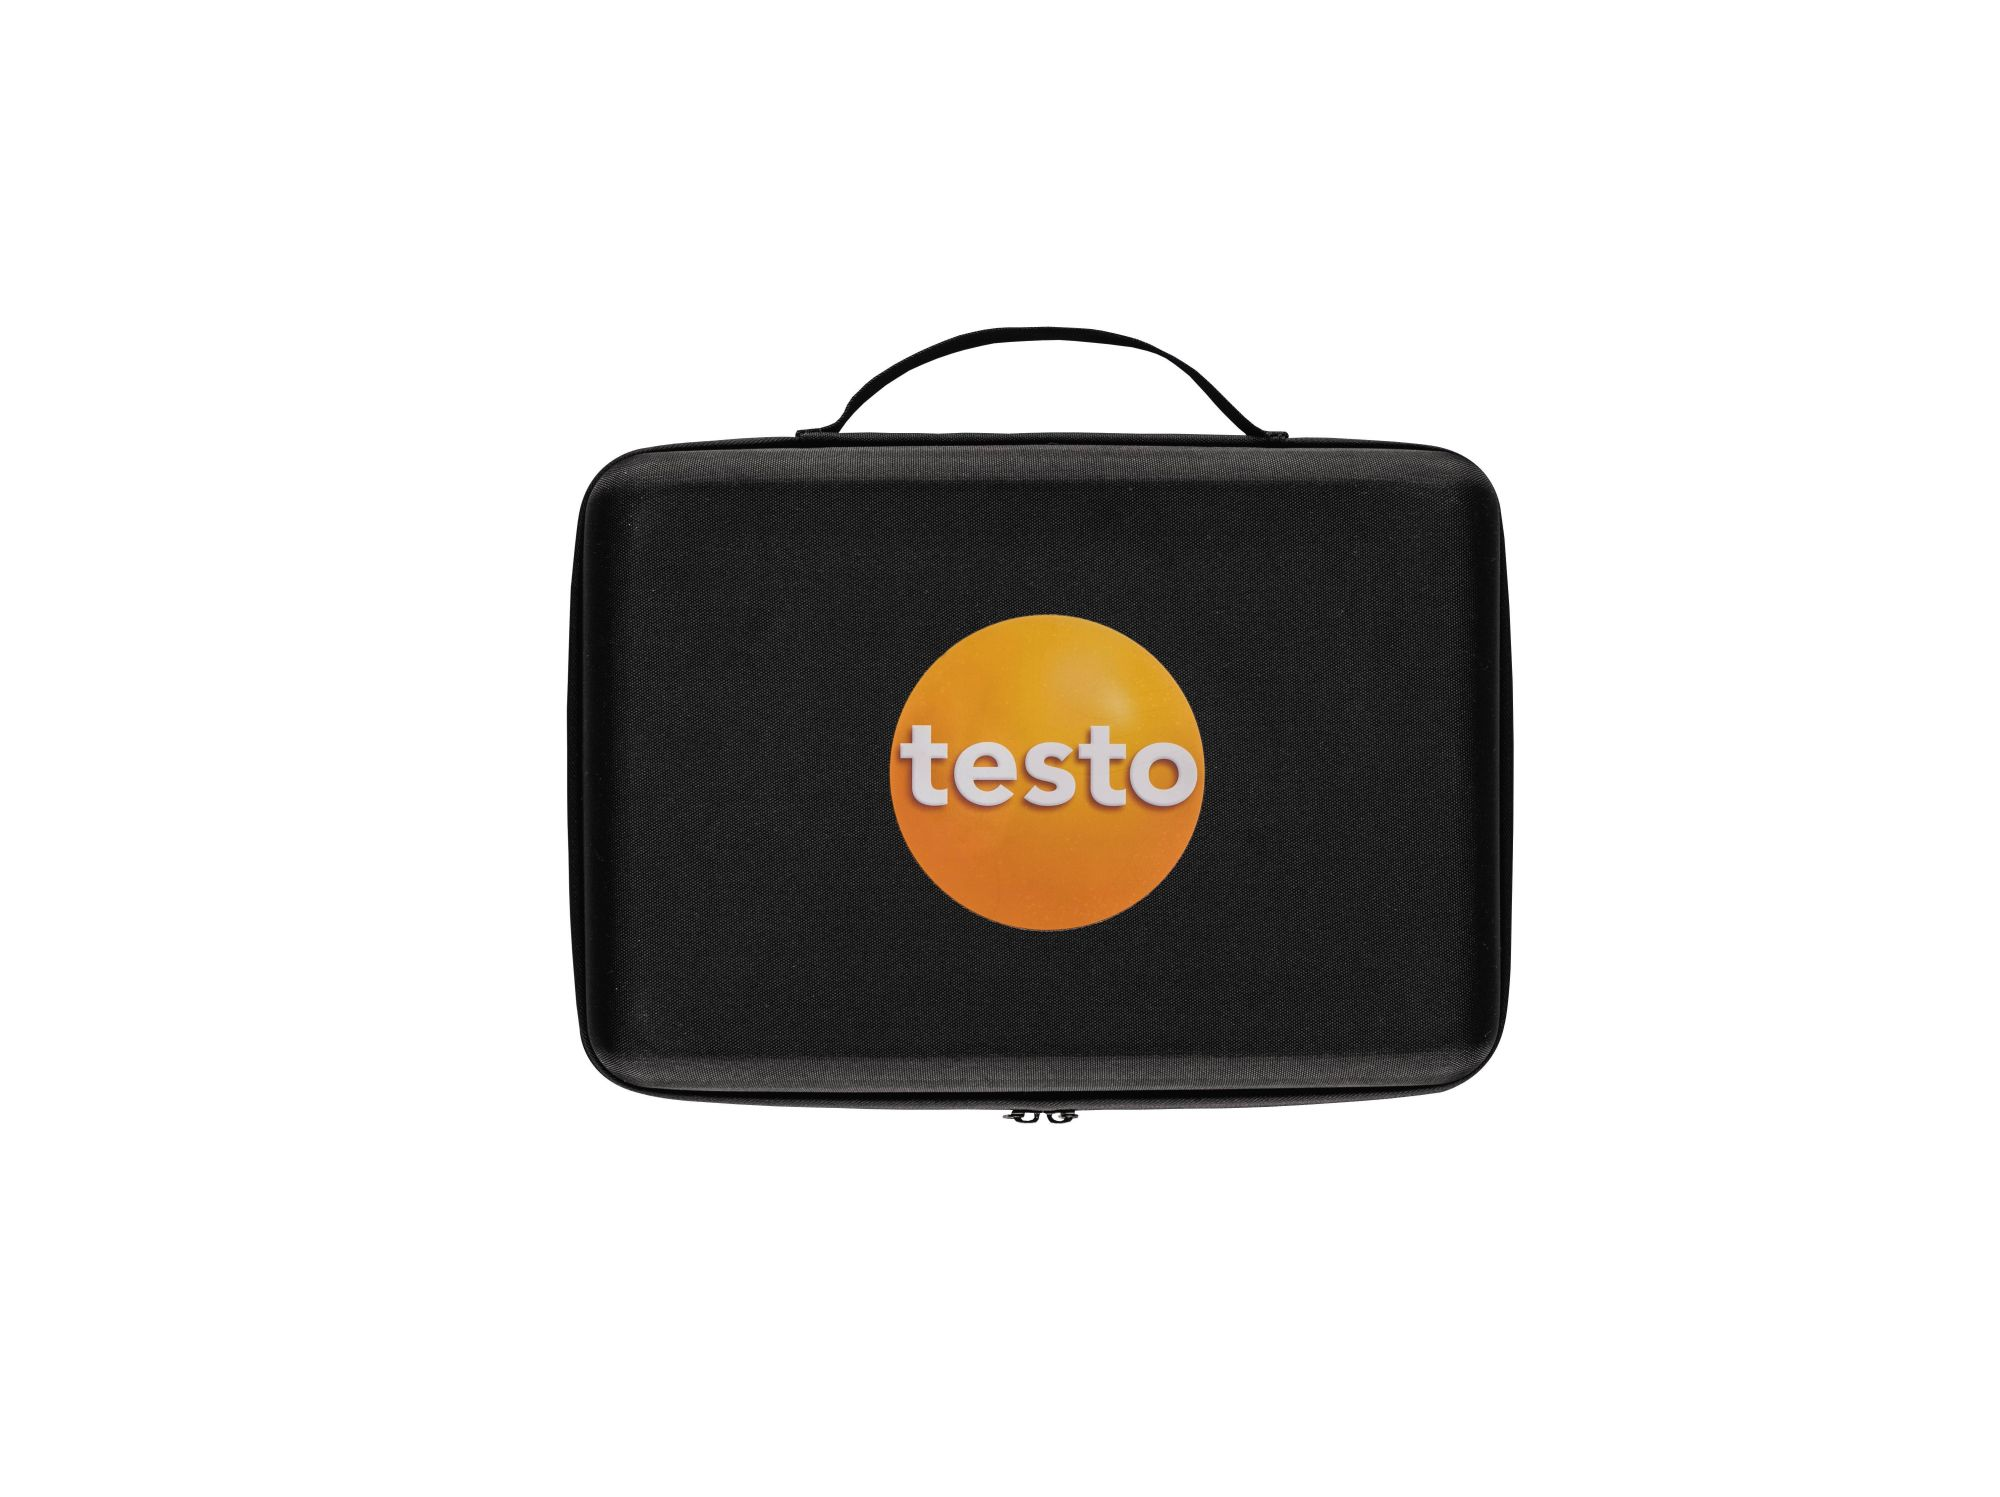 testo HVAC softcase storage case